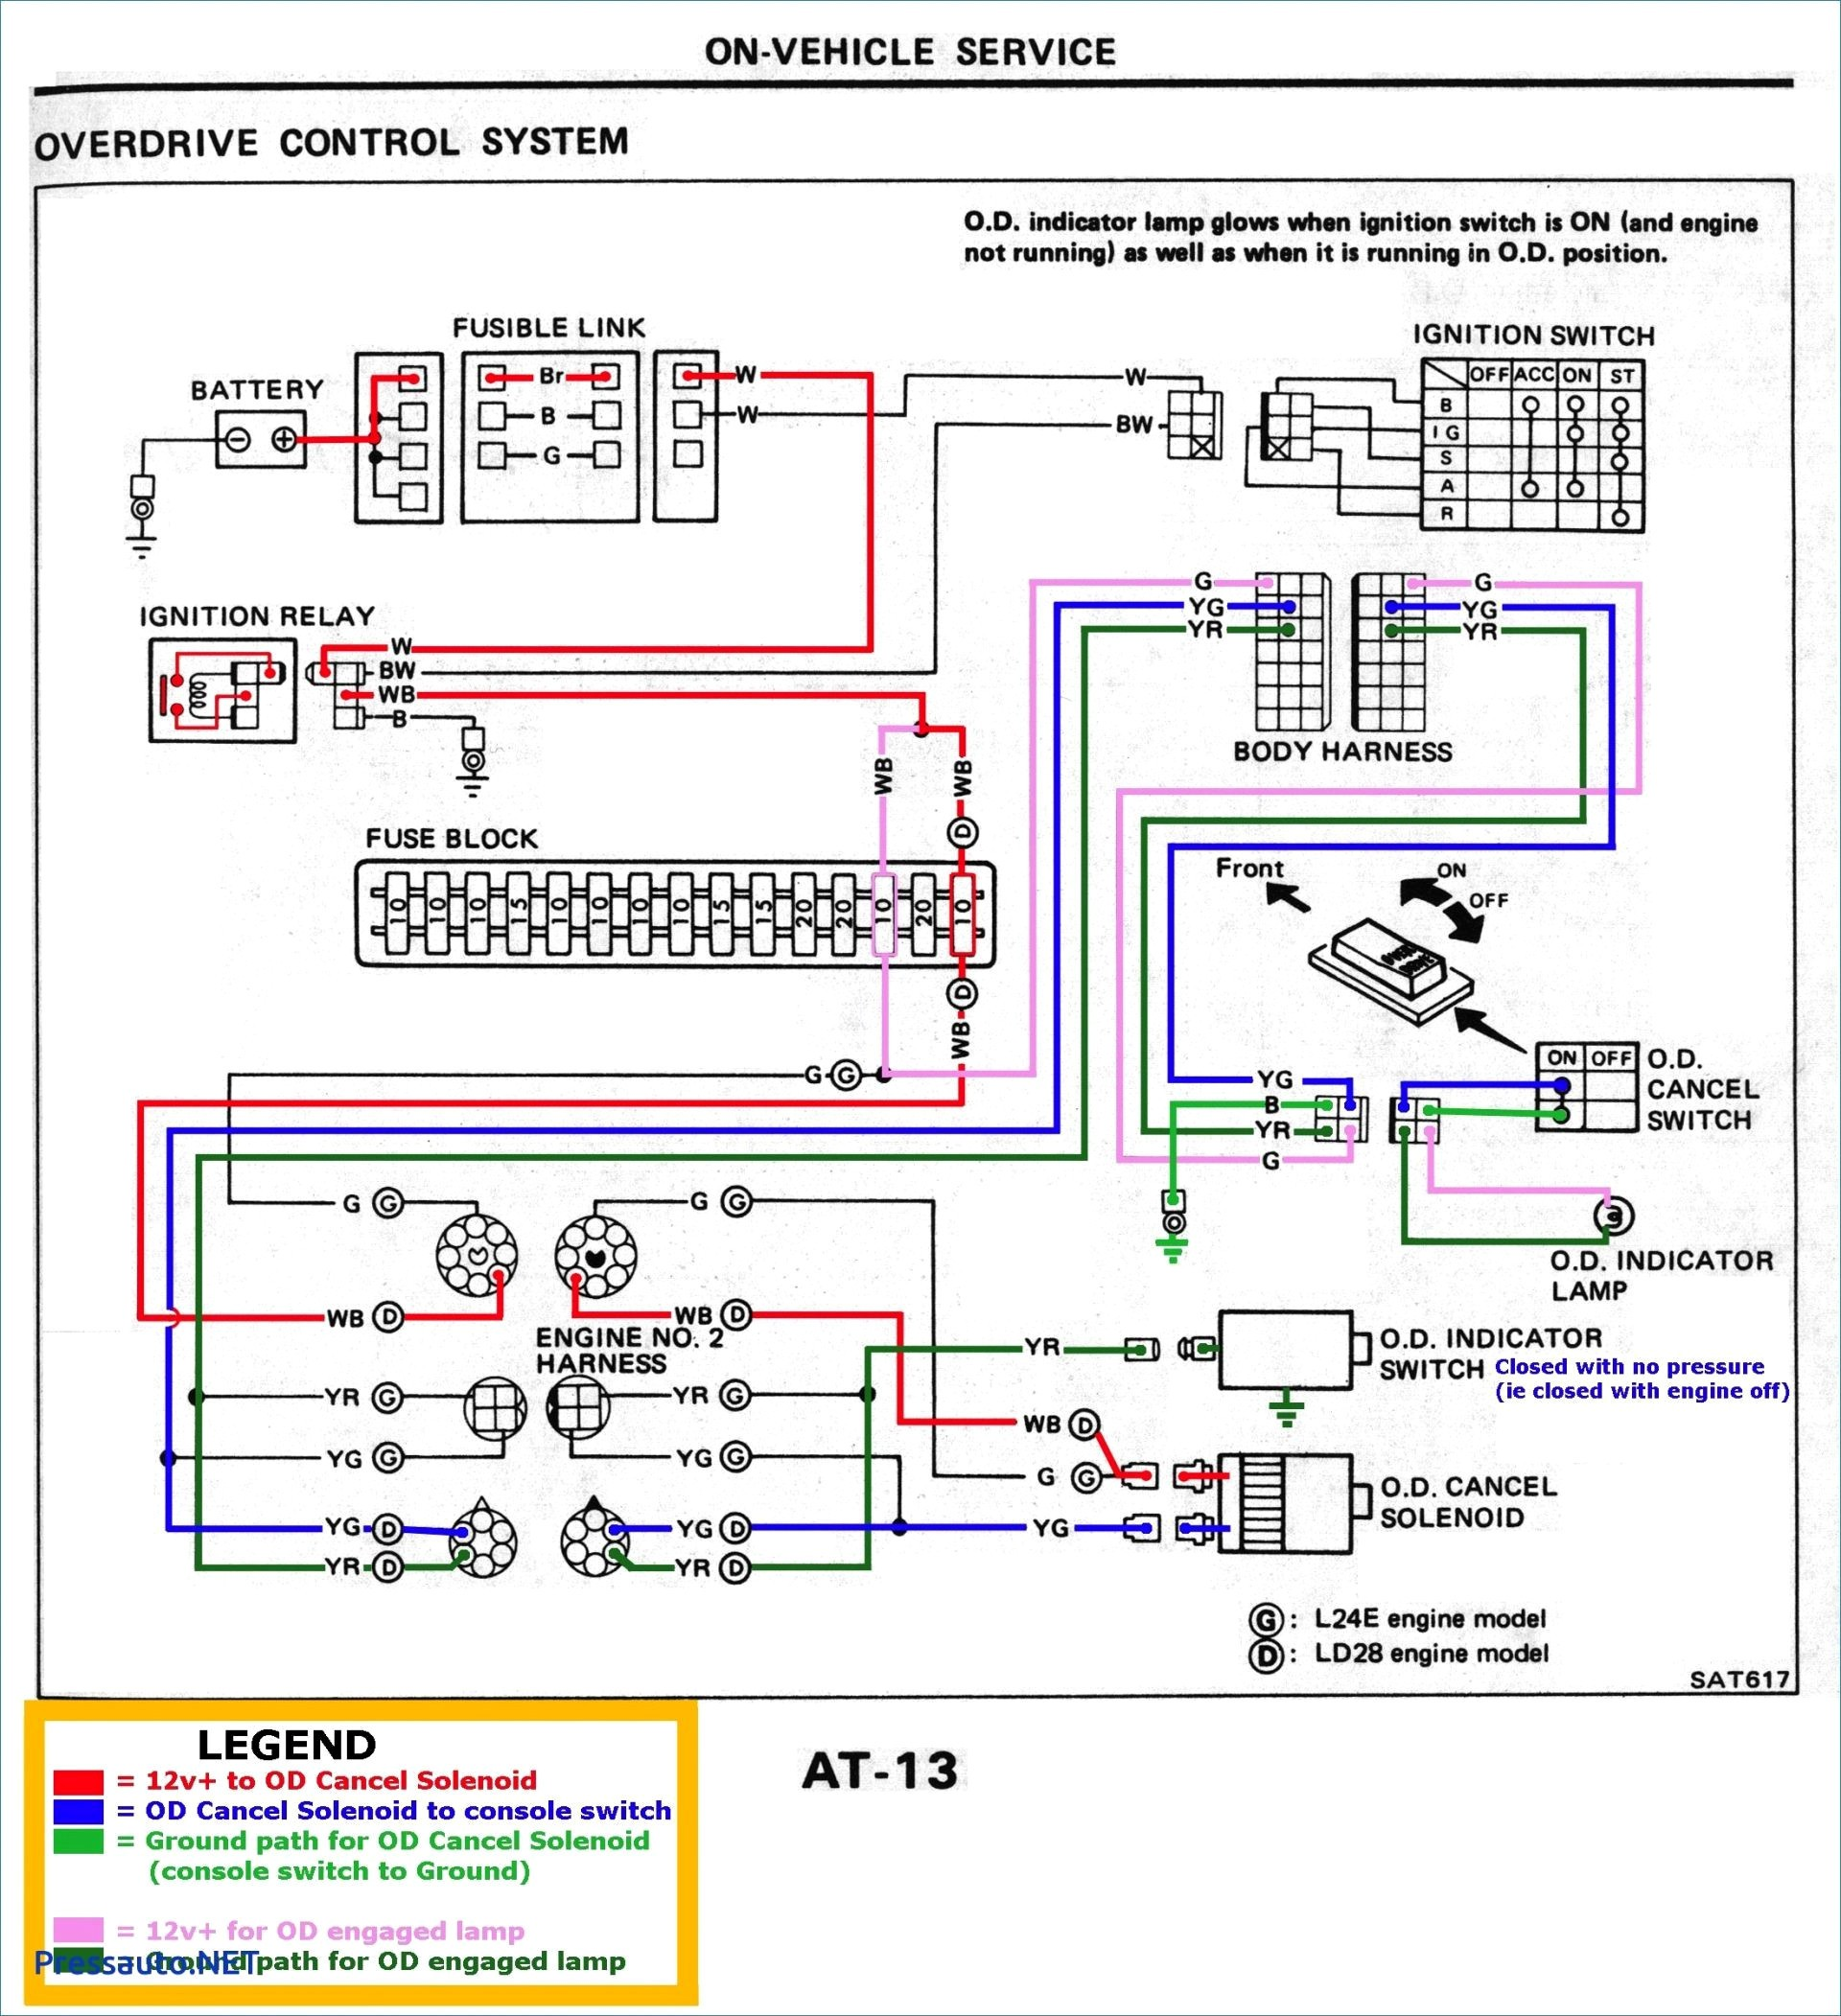 1979 Chevy Truck Radio Wiring Diagram 2006 Malibu Radio Wiring Wiring Diagram Used Of 1979 Chevy Truck Radio Wiring Diagram 1979 Gmc Truck Wiring Diagram Wiring Diagram Paper